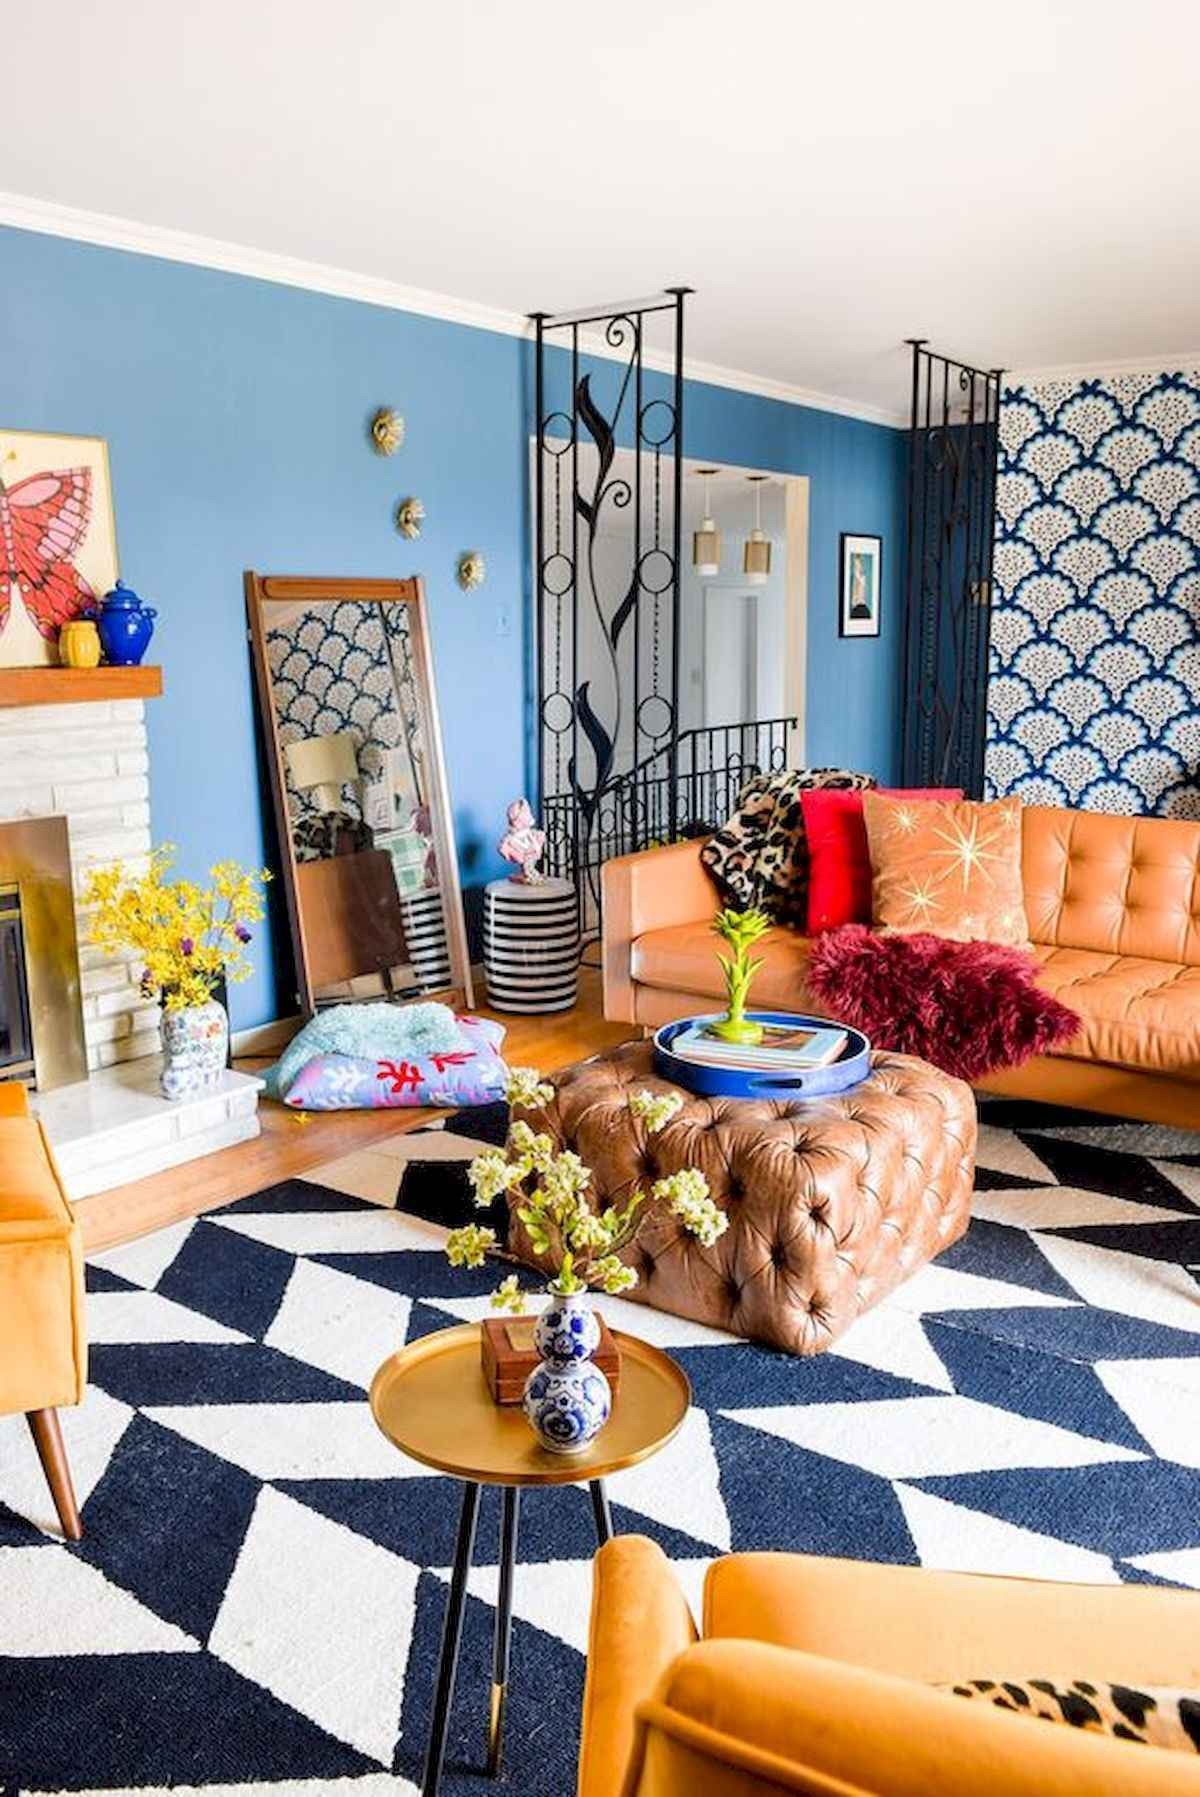 80+ Stunning Colorful Living Room Decor Ideas And Remodel For Summer